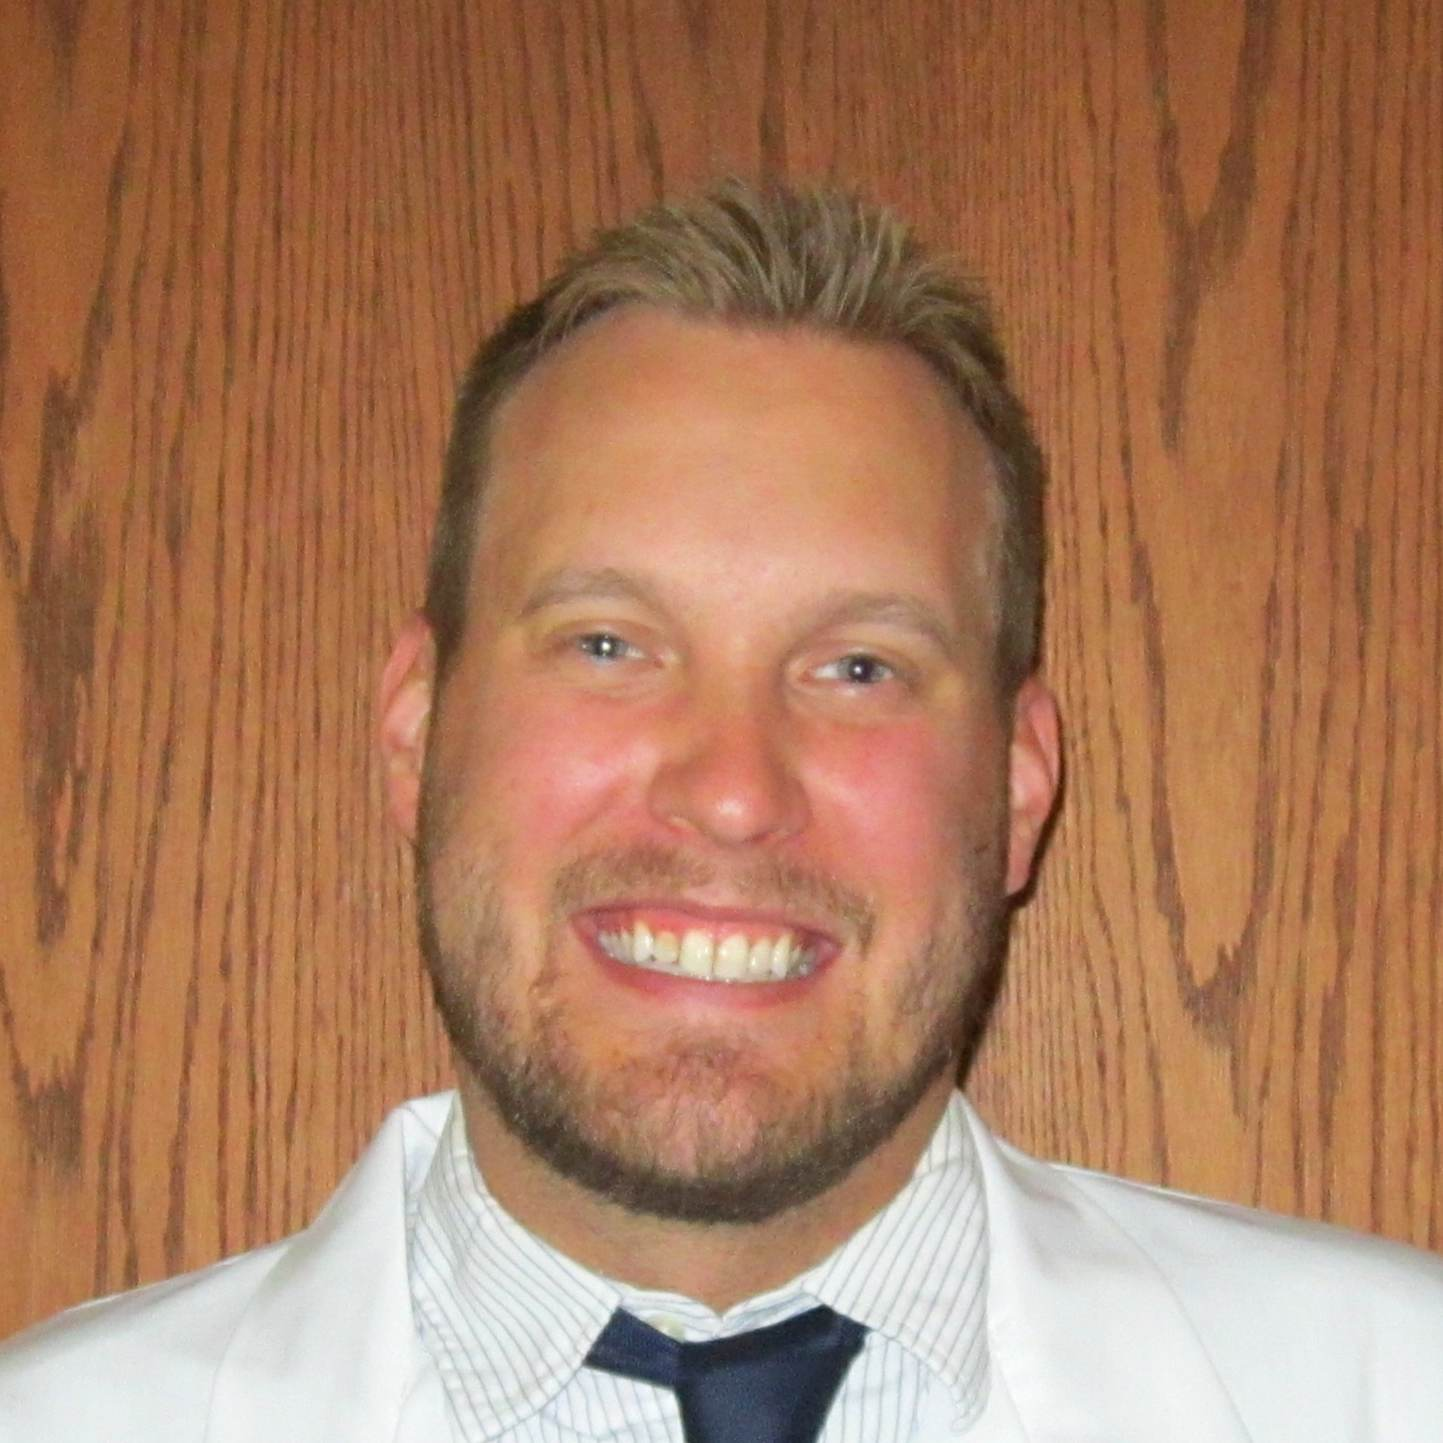 Erik DeLaney, MD - Hometown: Nevada, MissouriUndergraduate: University of MissouriMedical School: University of MissouriHobbies: Board games, bourbon, beer, hikes, naps over 9 hours in duration